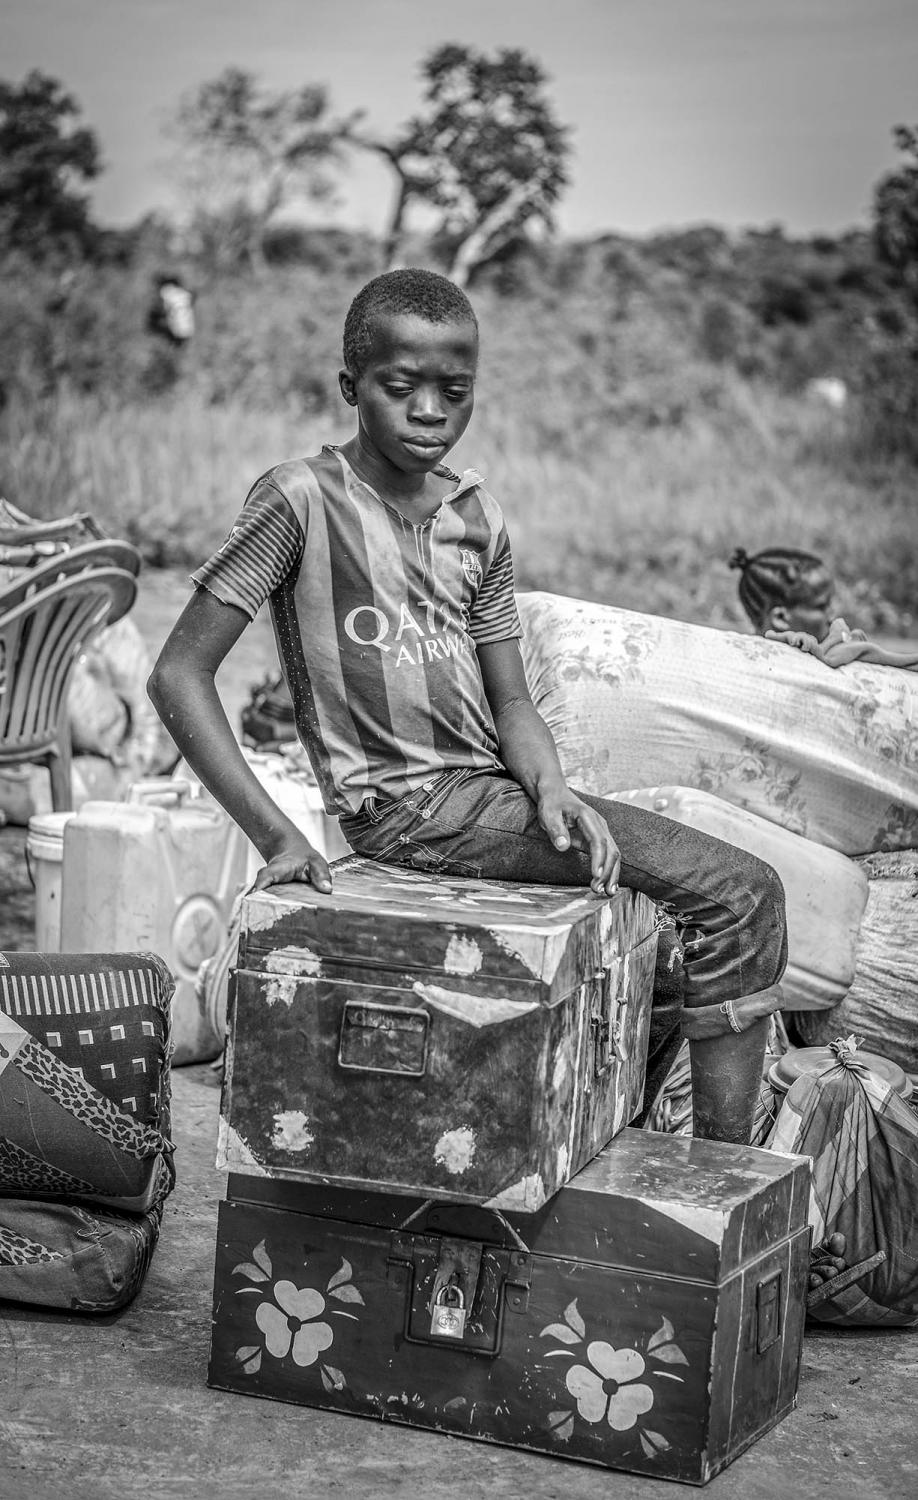 Conpijas Bida, 15, guards his family's belongings while waiting for the rest of his family to cross the border from South Sudan at Busia in Koboko district of Northern Uganda on May 1, 2017.